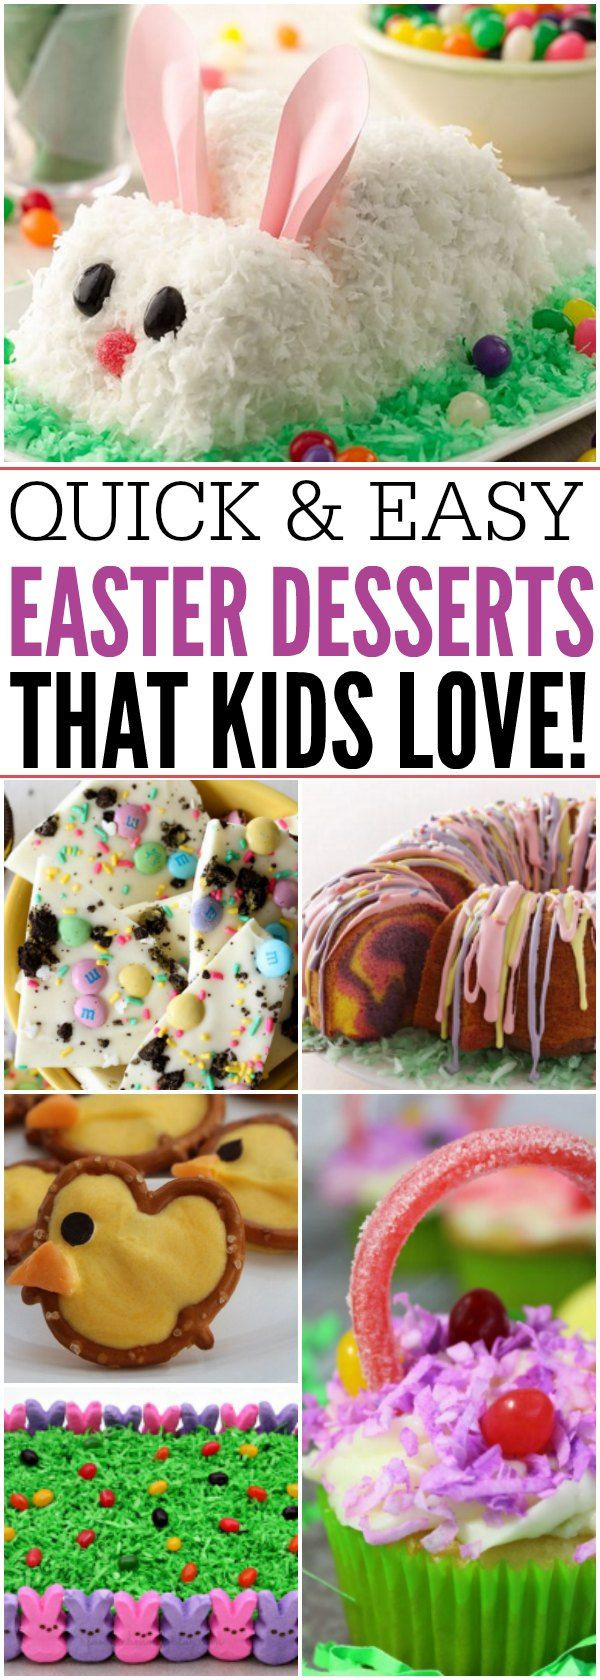 Easy Easter Desserts  Best 25 Easy easter desserts ideas on Pinterest